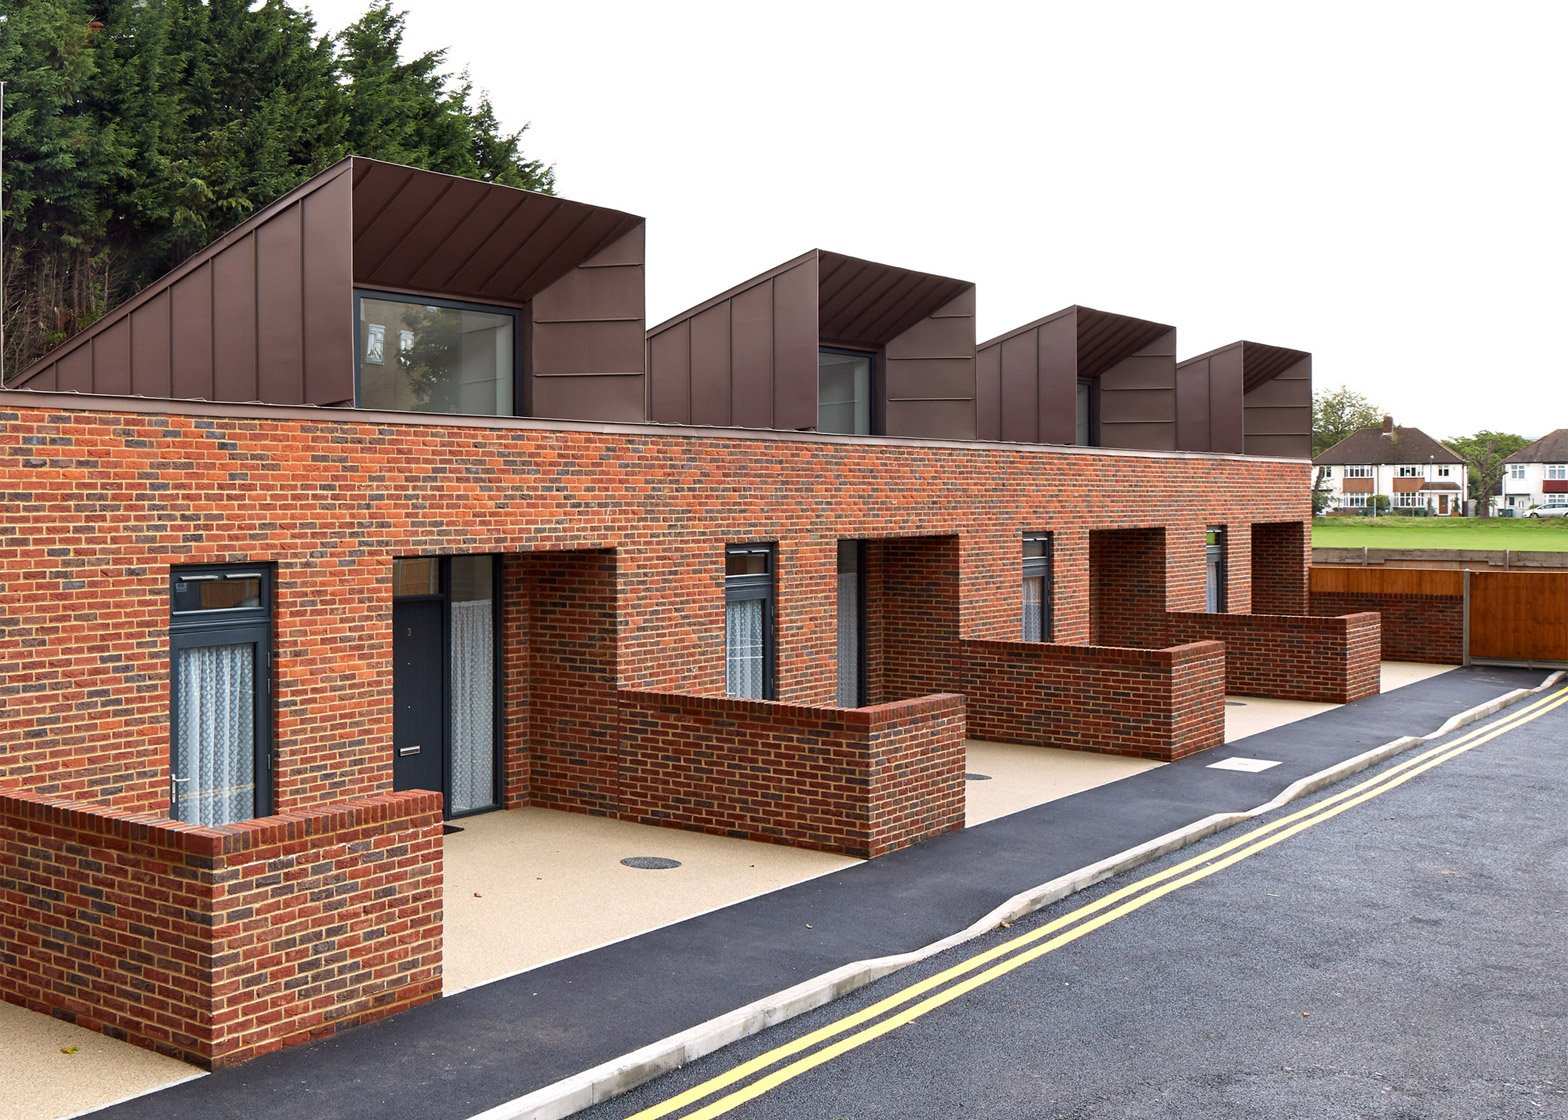 Ravens Way housing by Bell Phillips Architects